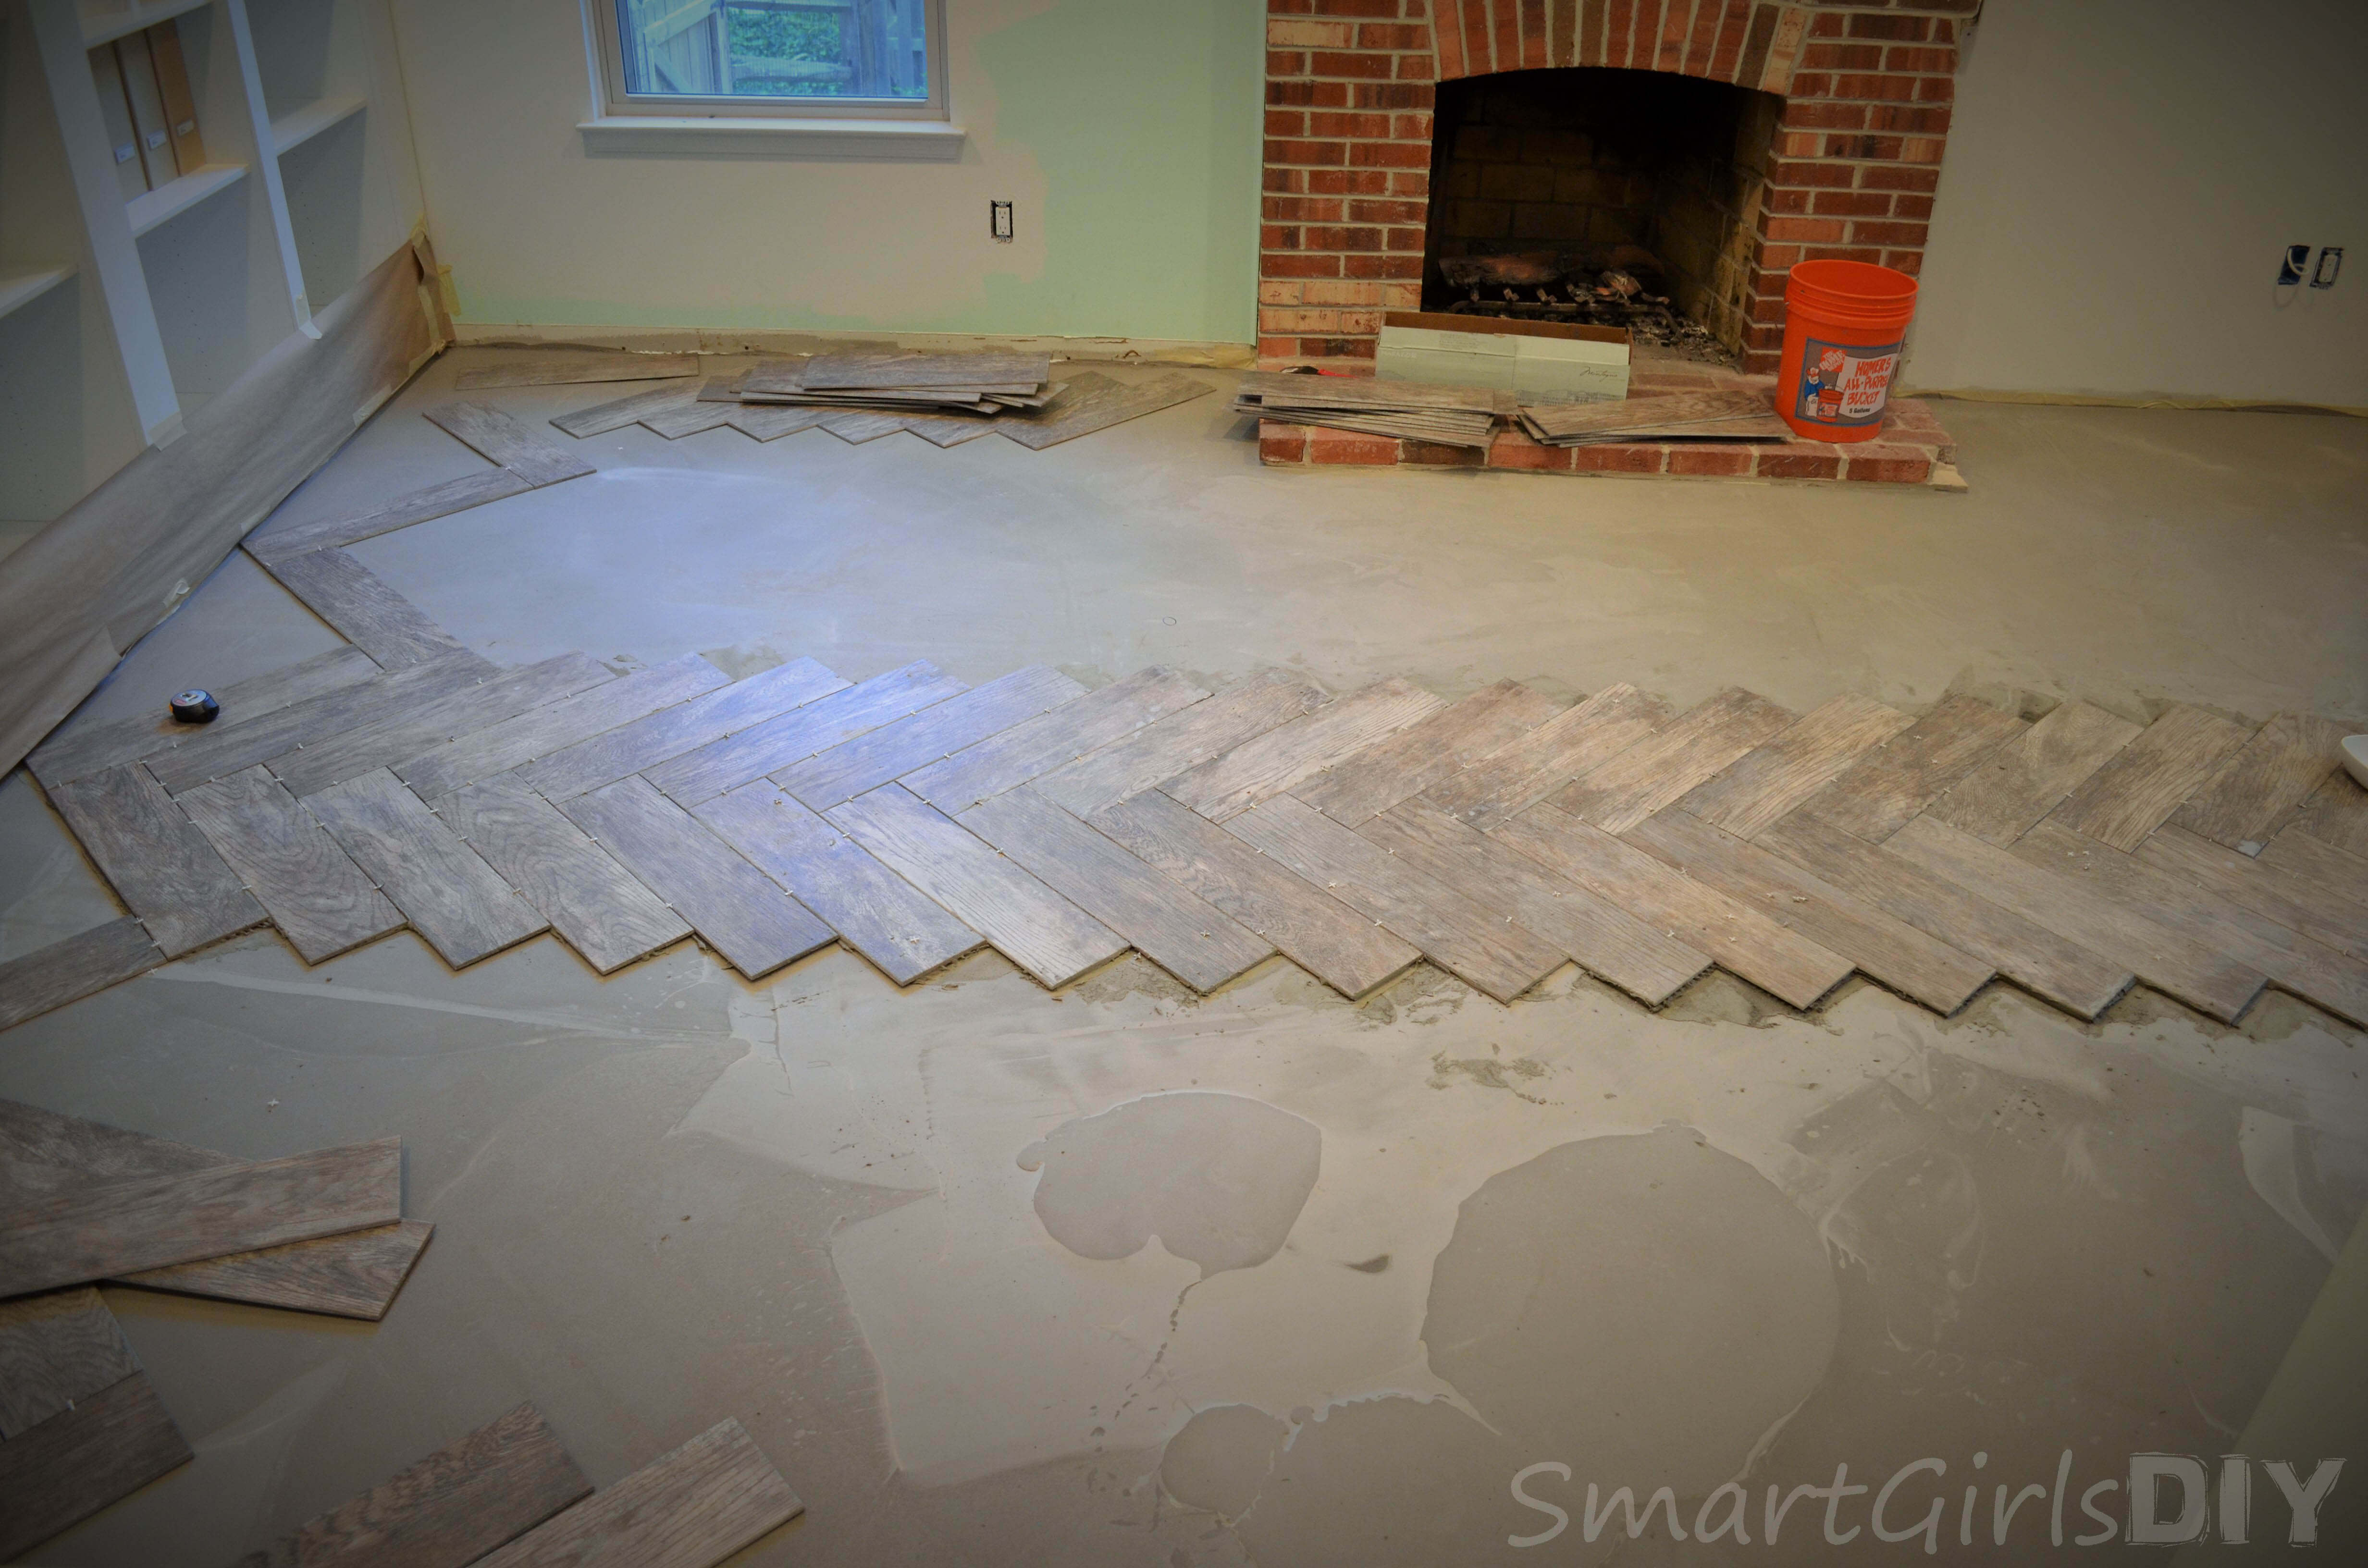 Laying tiles on concrete floor